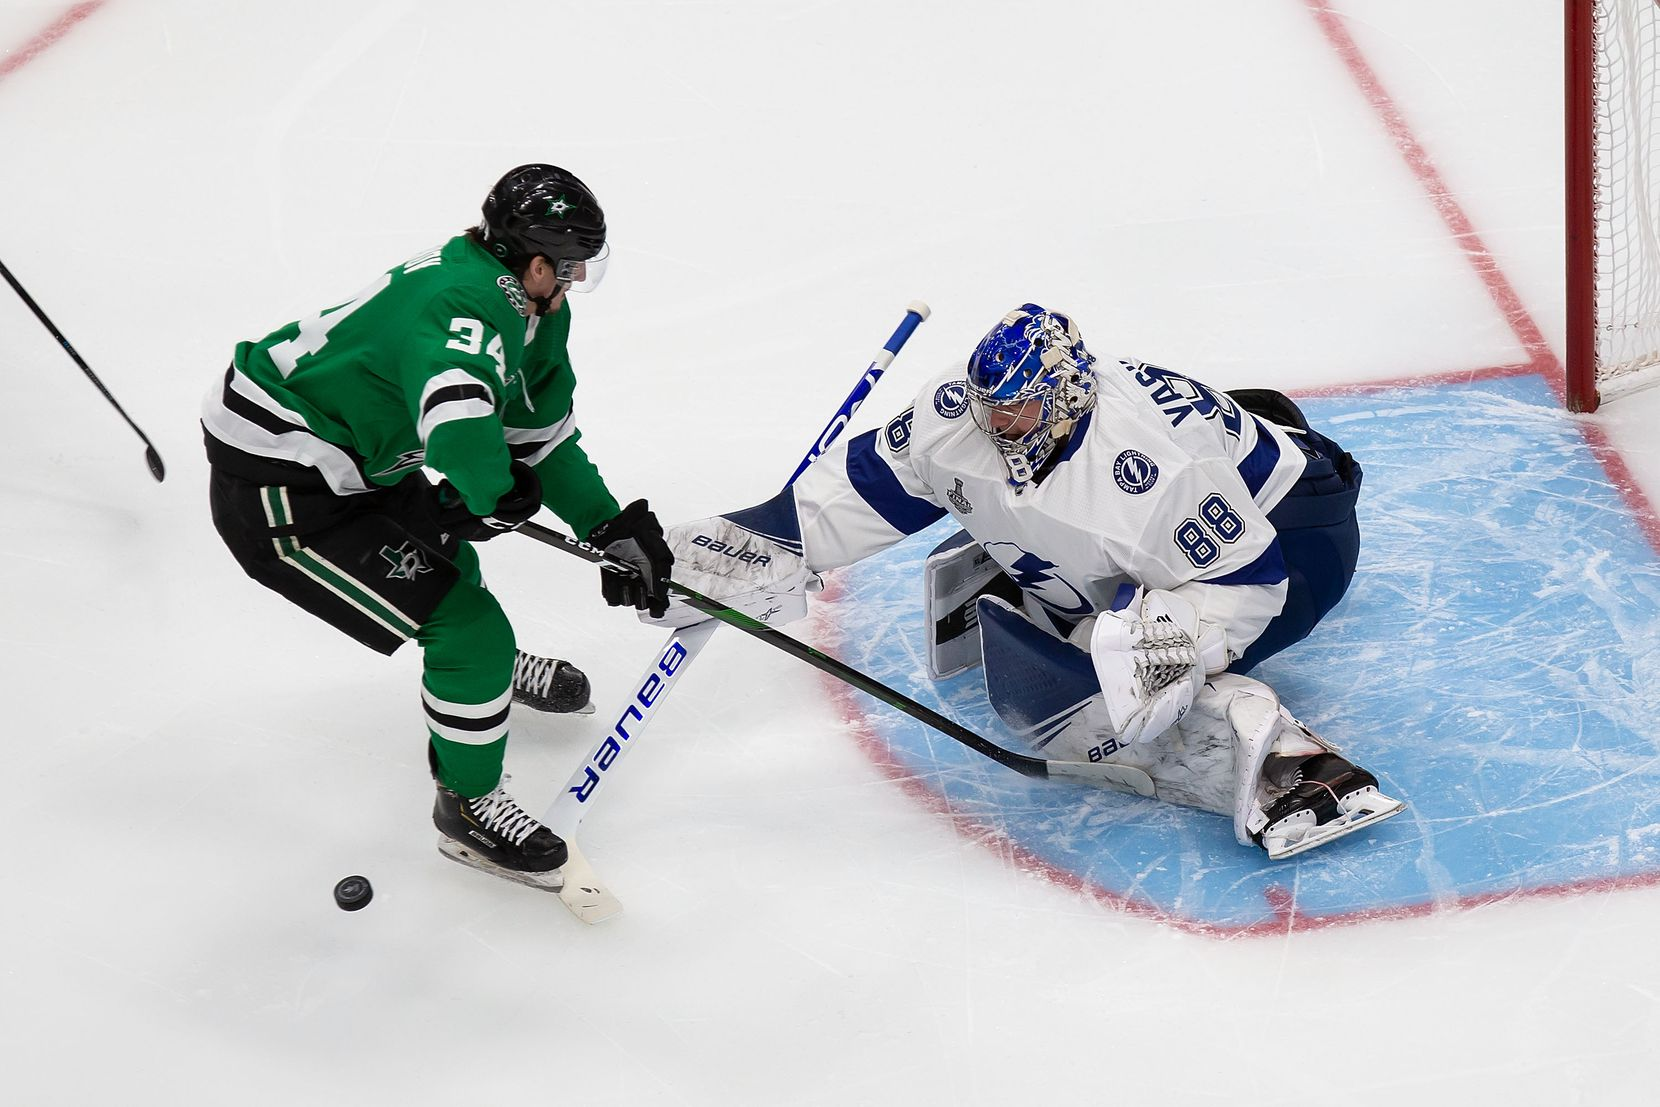 Denis Gurianov (34) of the Dallas Stars takes a shot against goaltender Andrei Vasilevskiy (88) of the Tampa Bay Lightning during Game Three of the Stanley Cup Final at Rogers Place in Edmonton, Alberta, Canada on Wednesday, September 23, 2020. (Codie McLachlan/Special Contributor)